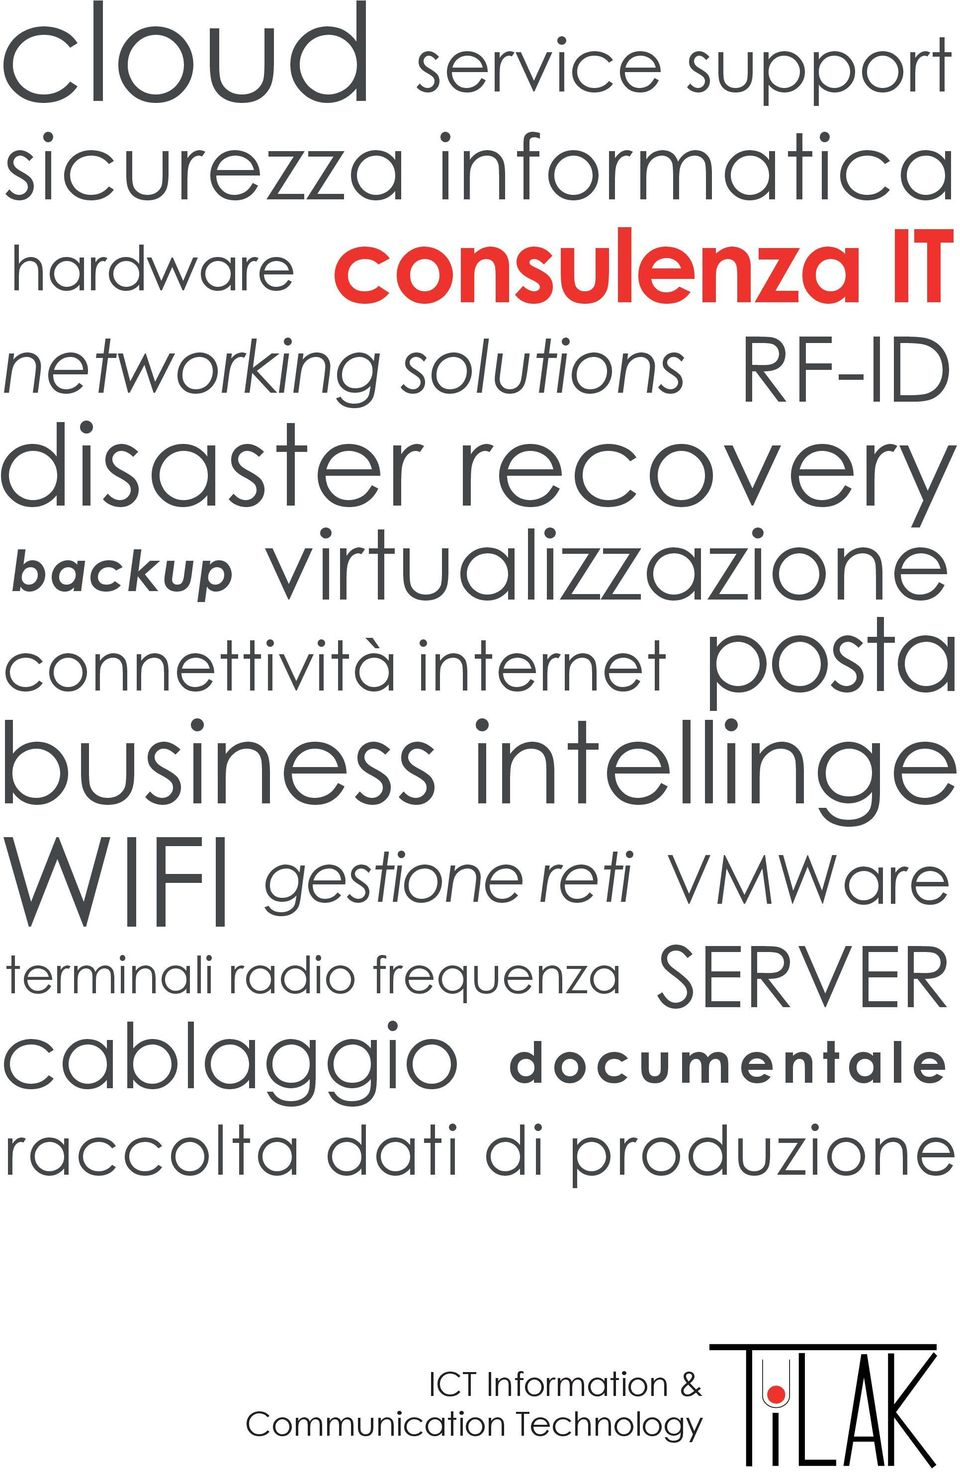 posta business intellinge WIFI gestione reti terminali radio frequenza